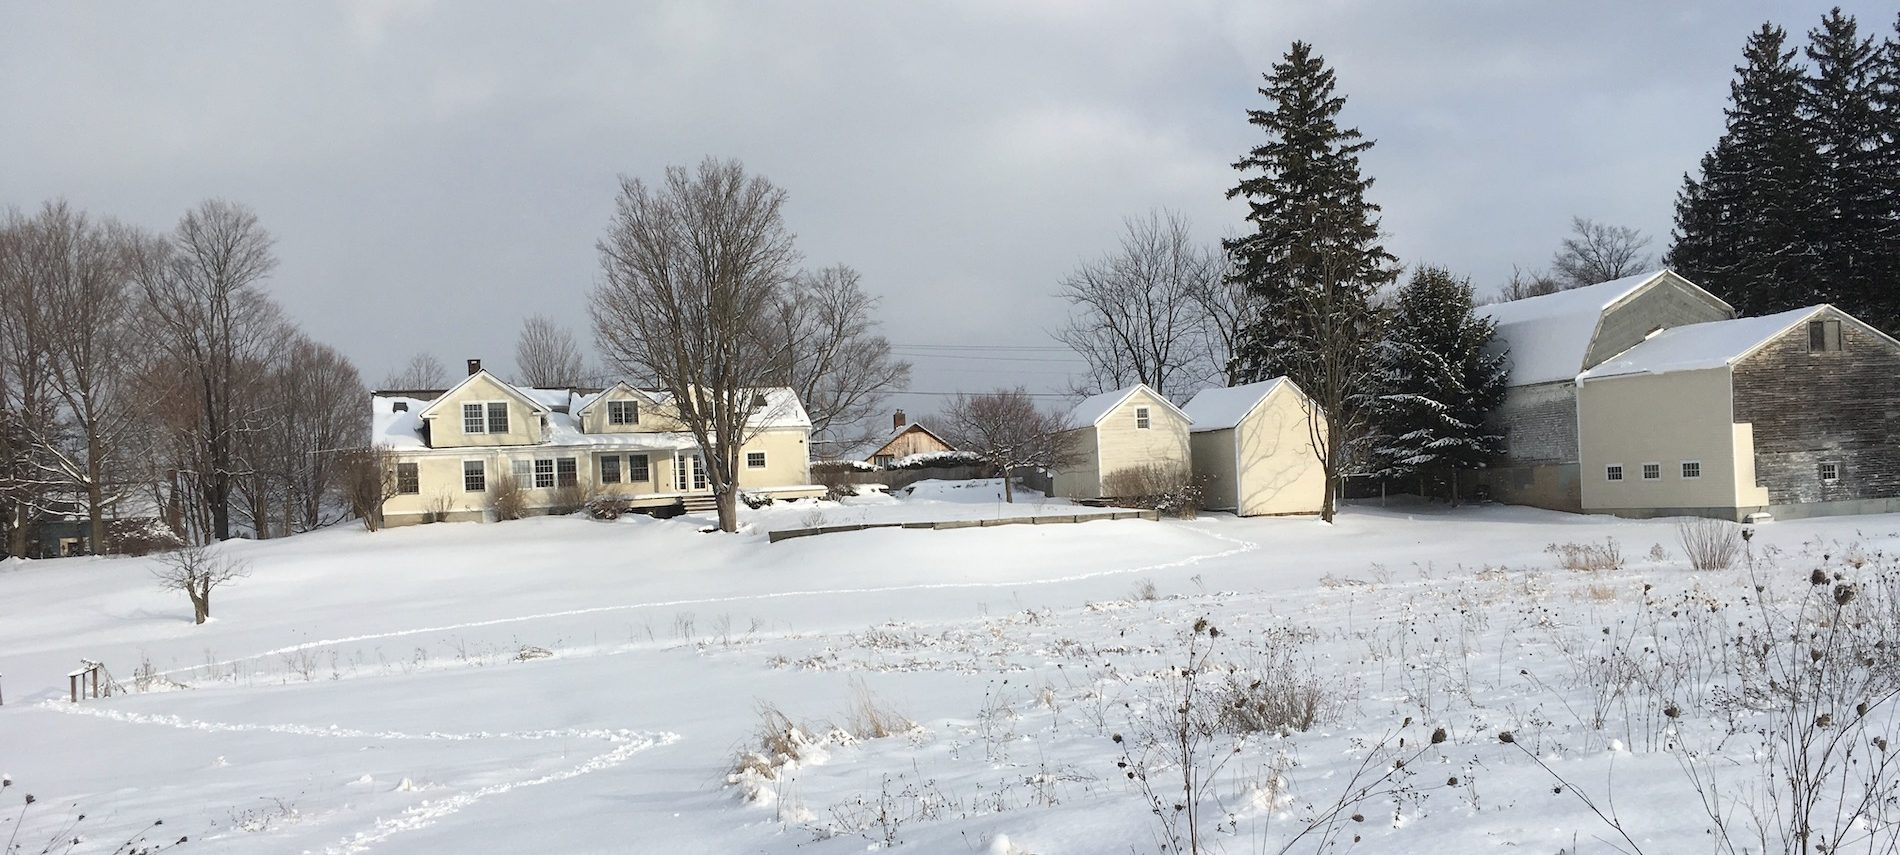 View of the yellow house and outbuildings, and a gray barn in the snow in the distance.